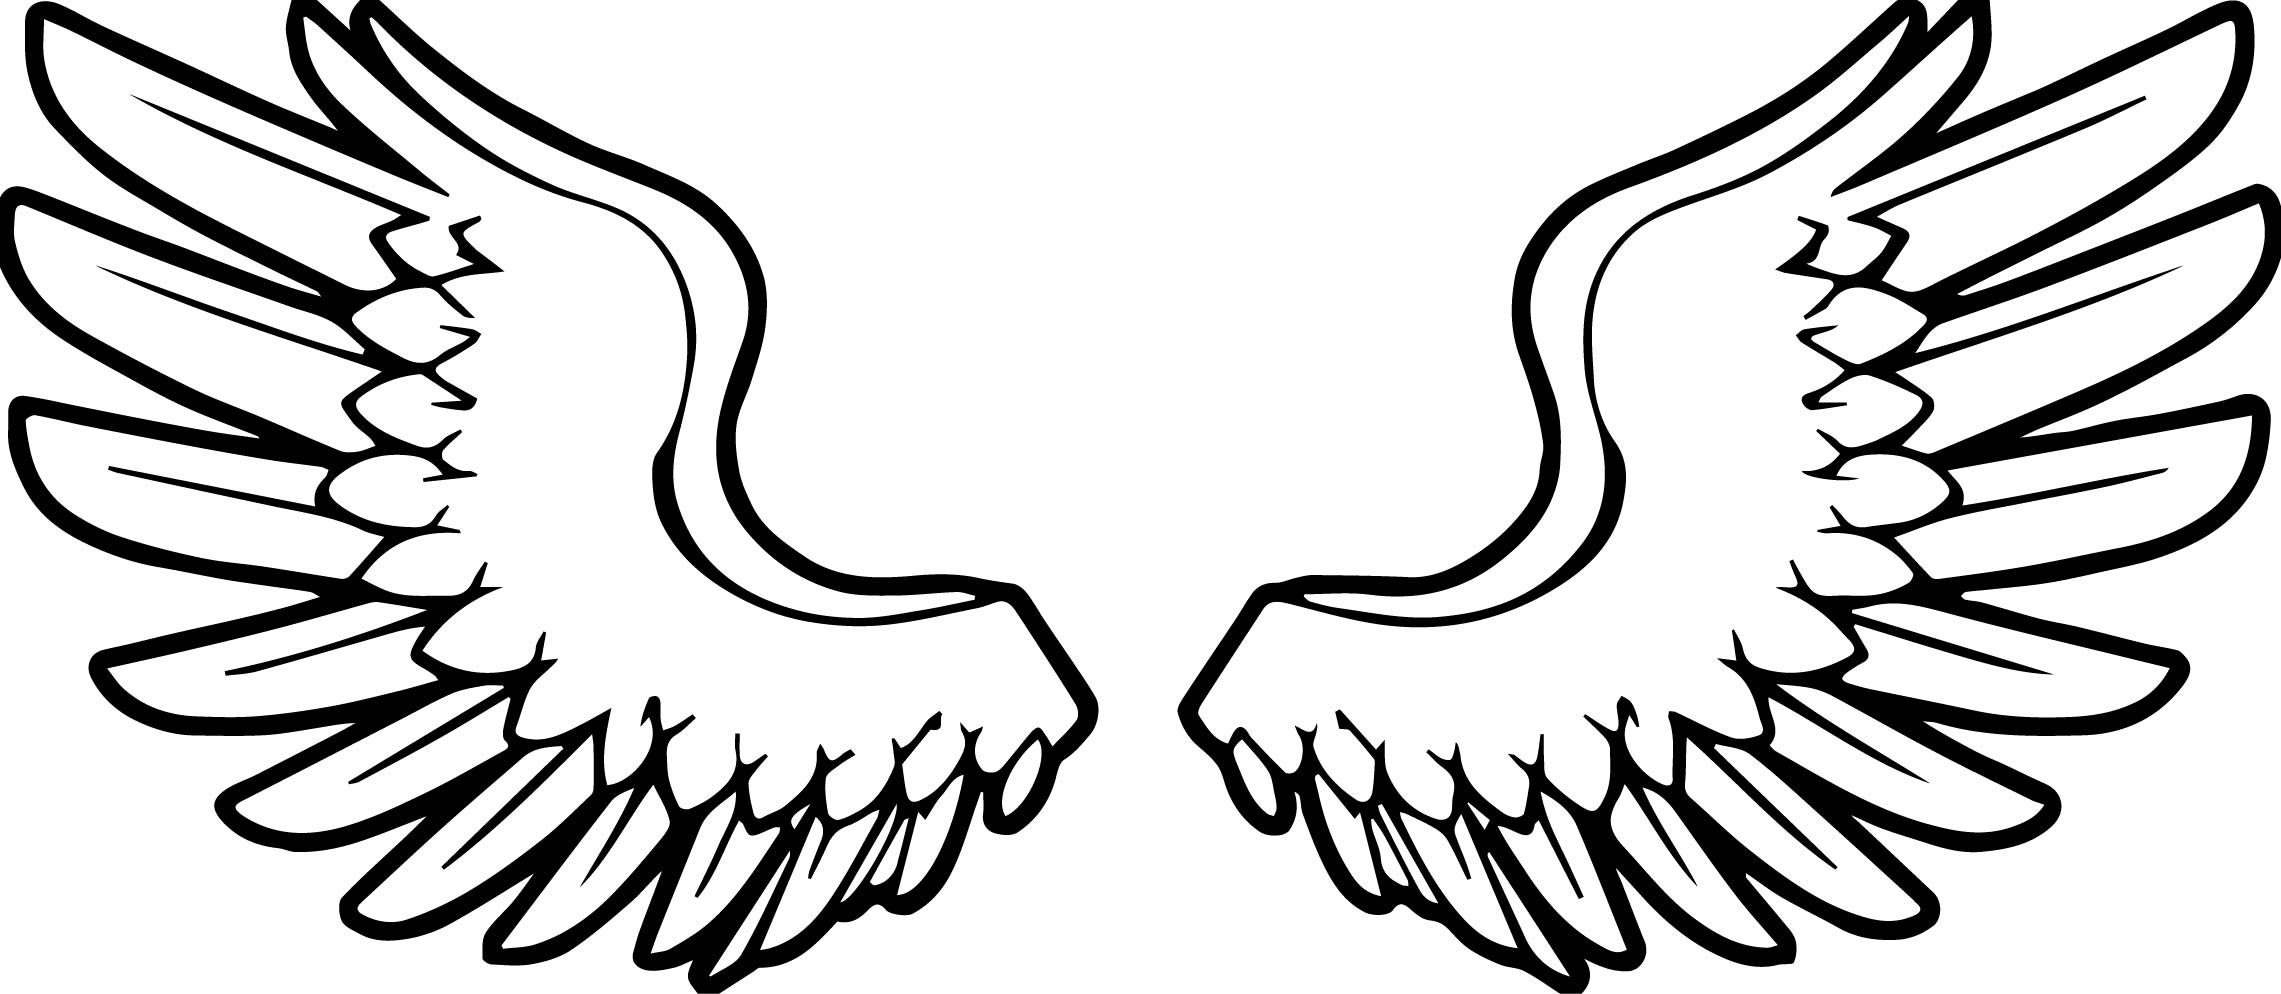 coloring cross with wing coloring pages angel wings at getcoloringscom free with cross coloring wing